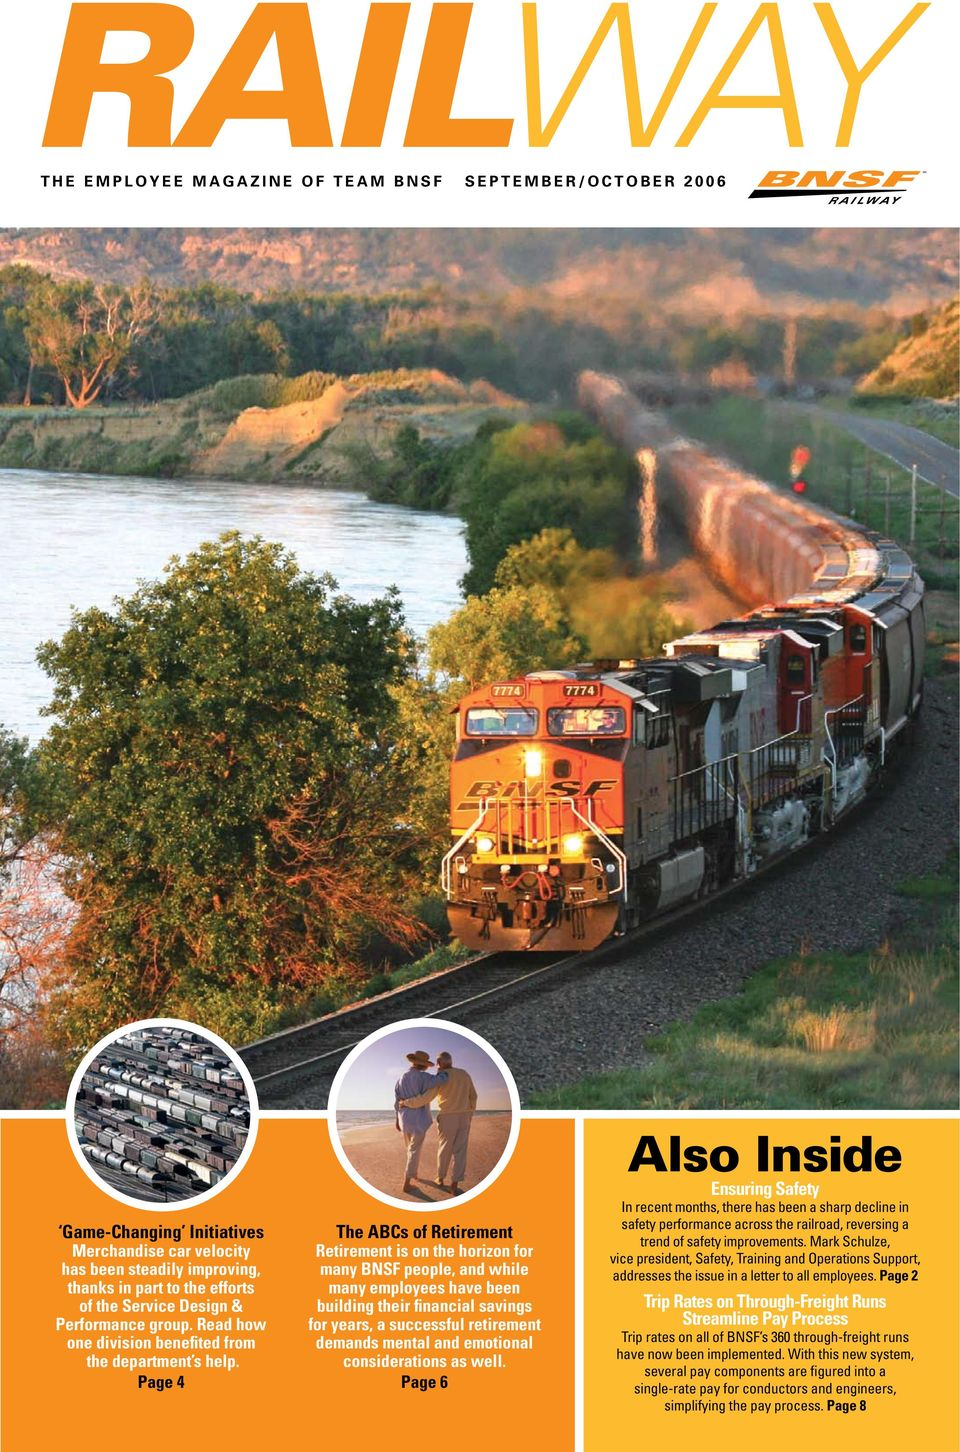 Page 4 The ABCs of Retirement Retirement is on the horizon for many BNSF people, and while many employees have been building their financial savings for years, a successful retirement demands mental